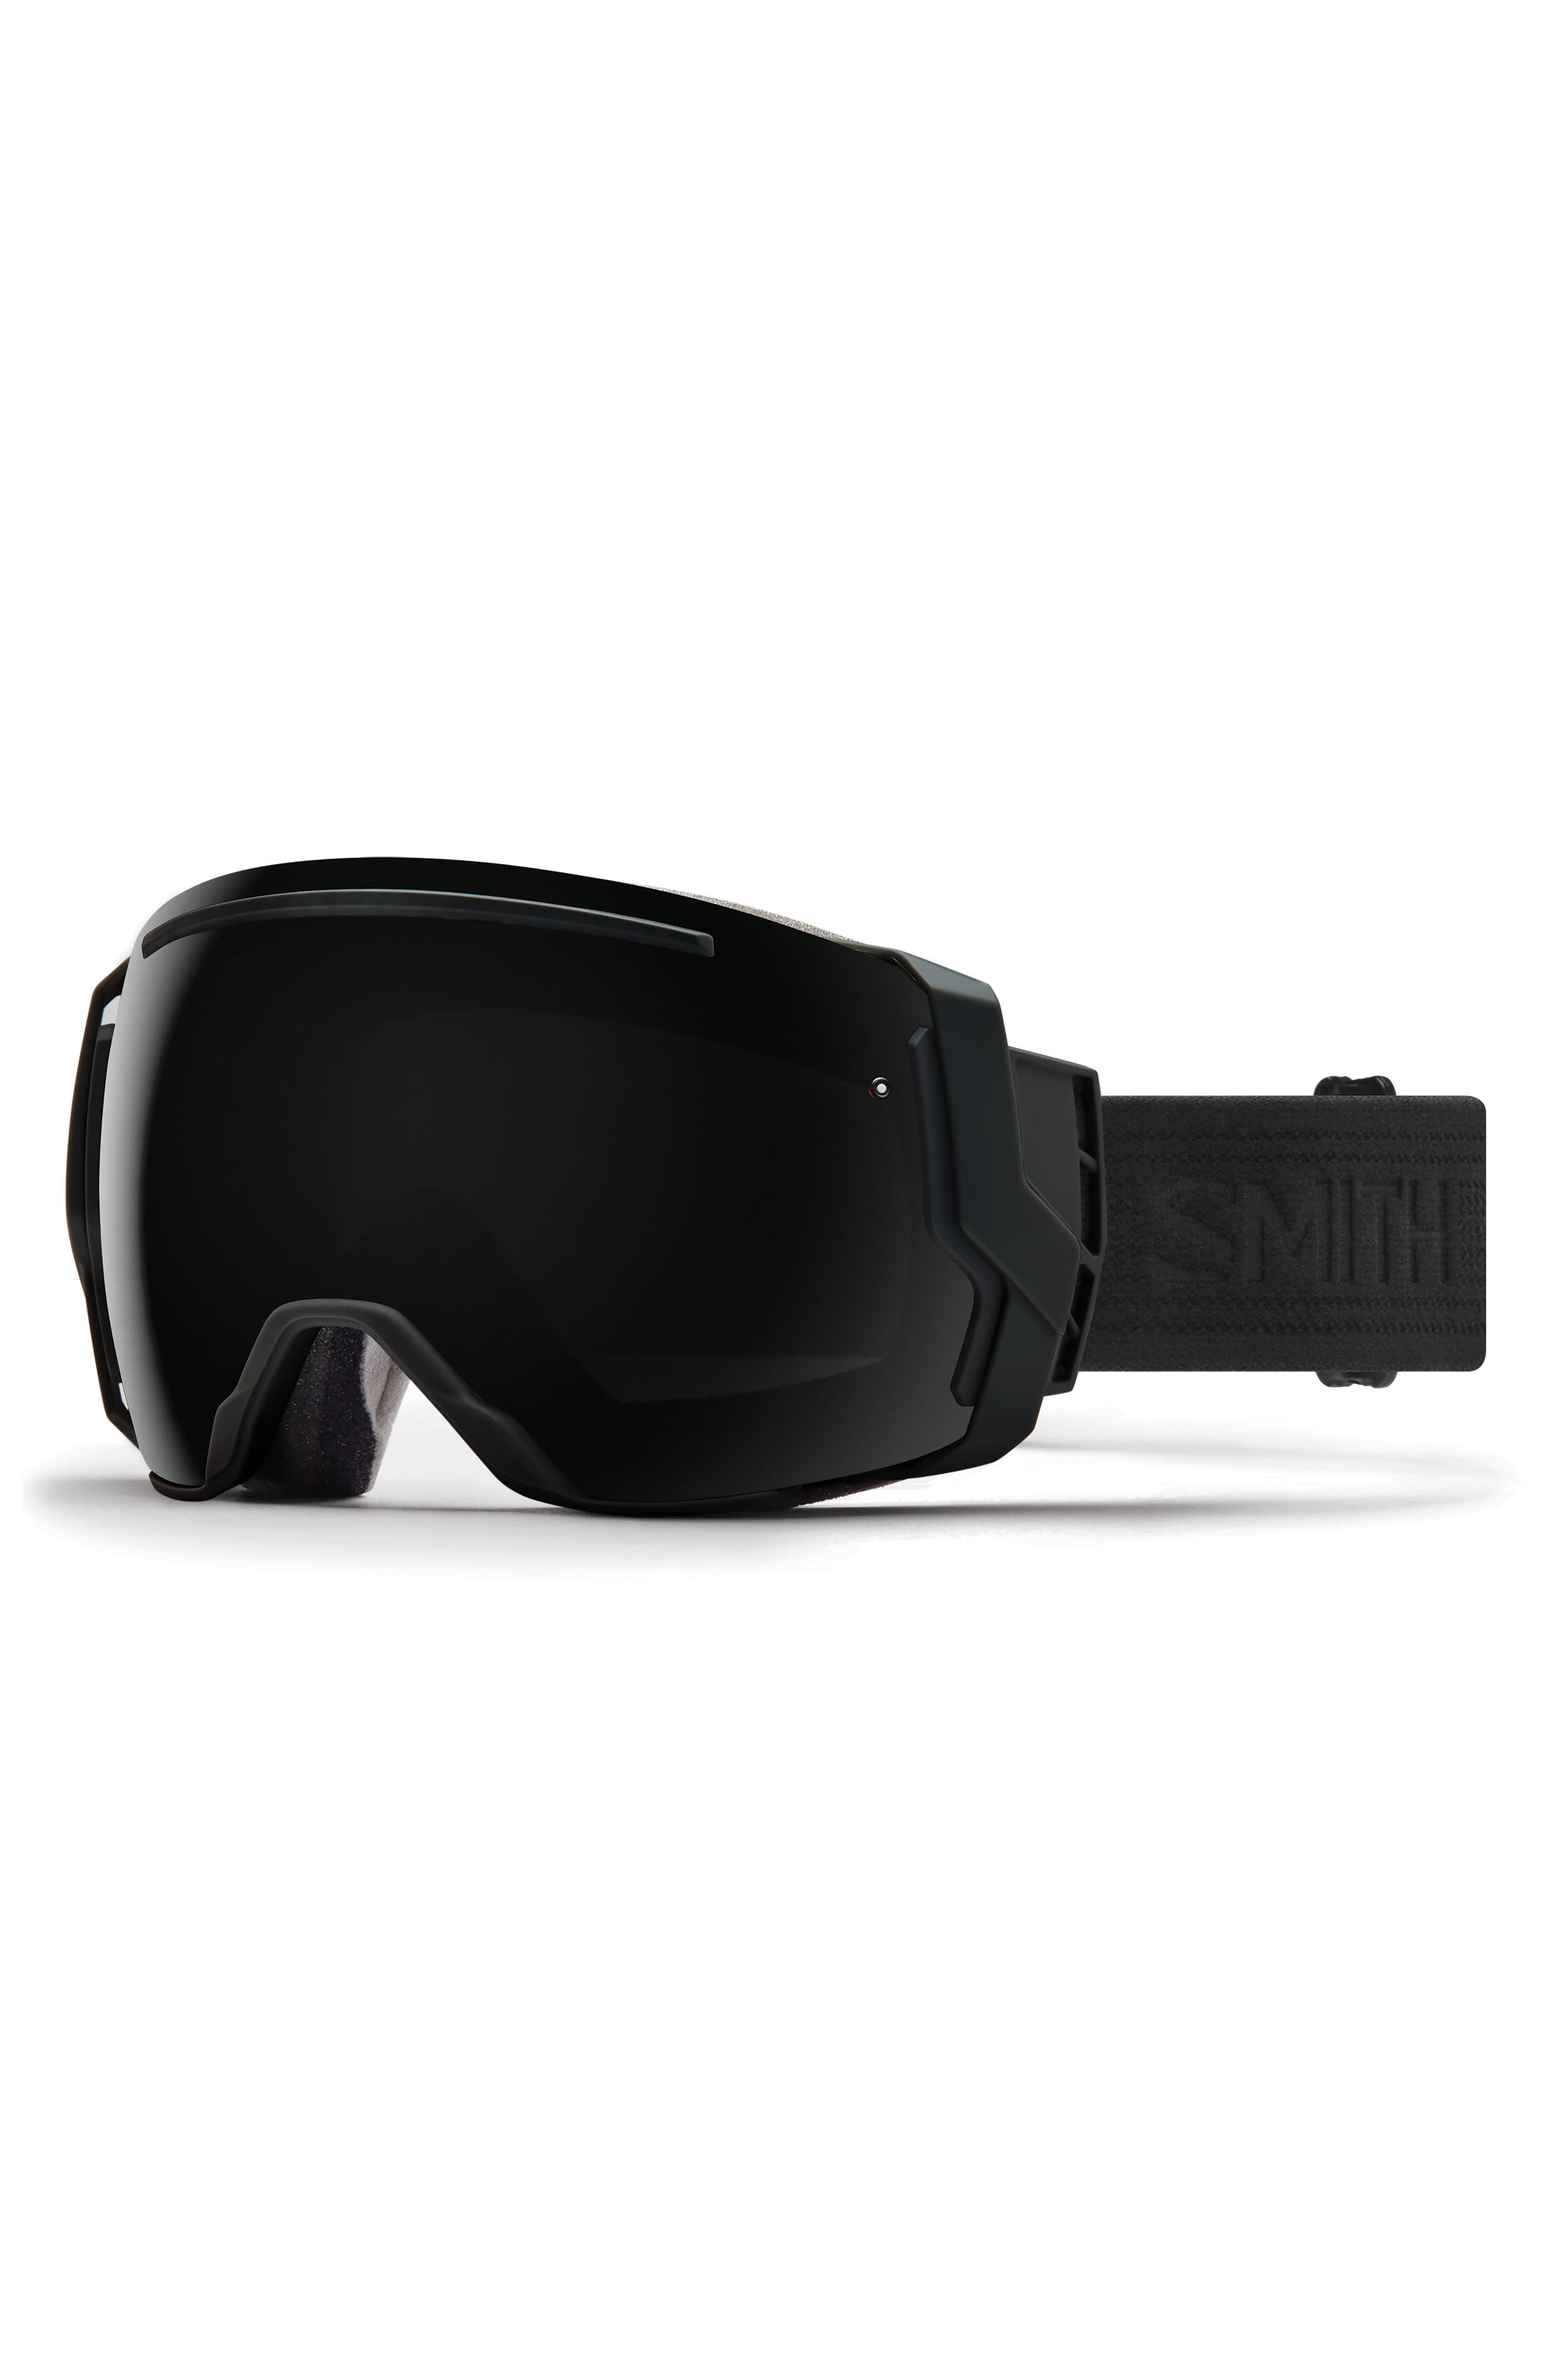 I/O7 Chromapop 185mm Snow Goggles,                             Main thumbnail 1, color,                             001